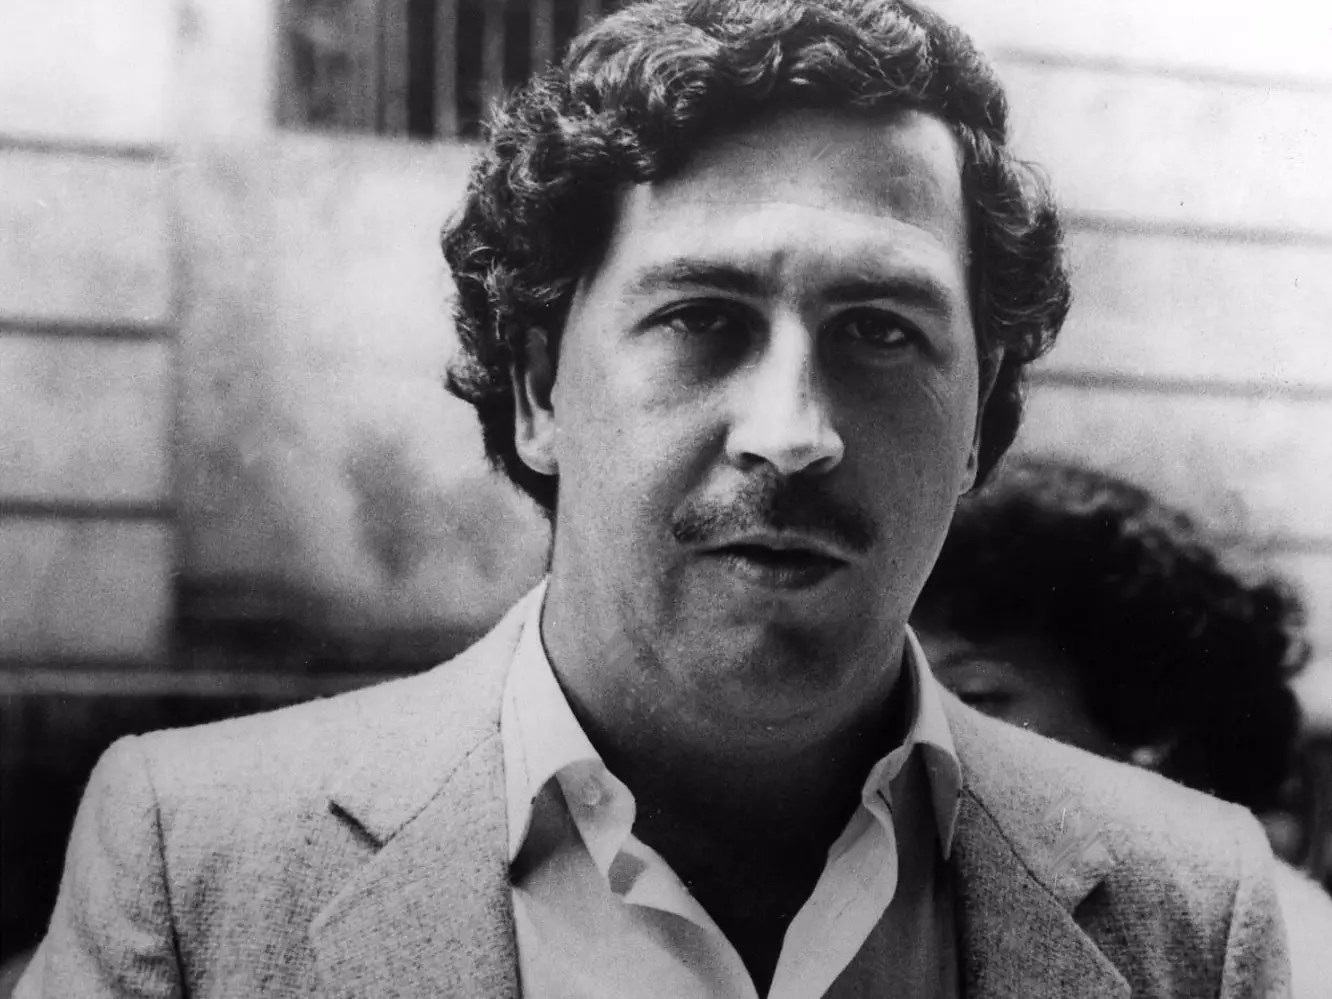 https://i2.wp.com/static5.businessinsider.com/image/55f1a7cdbd86ef1d008b9561/legendary-drug-lord-pablo-escobar-lost-21-billion-in-cash-each-year--and-it-didnt-matter.jpg